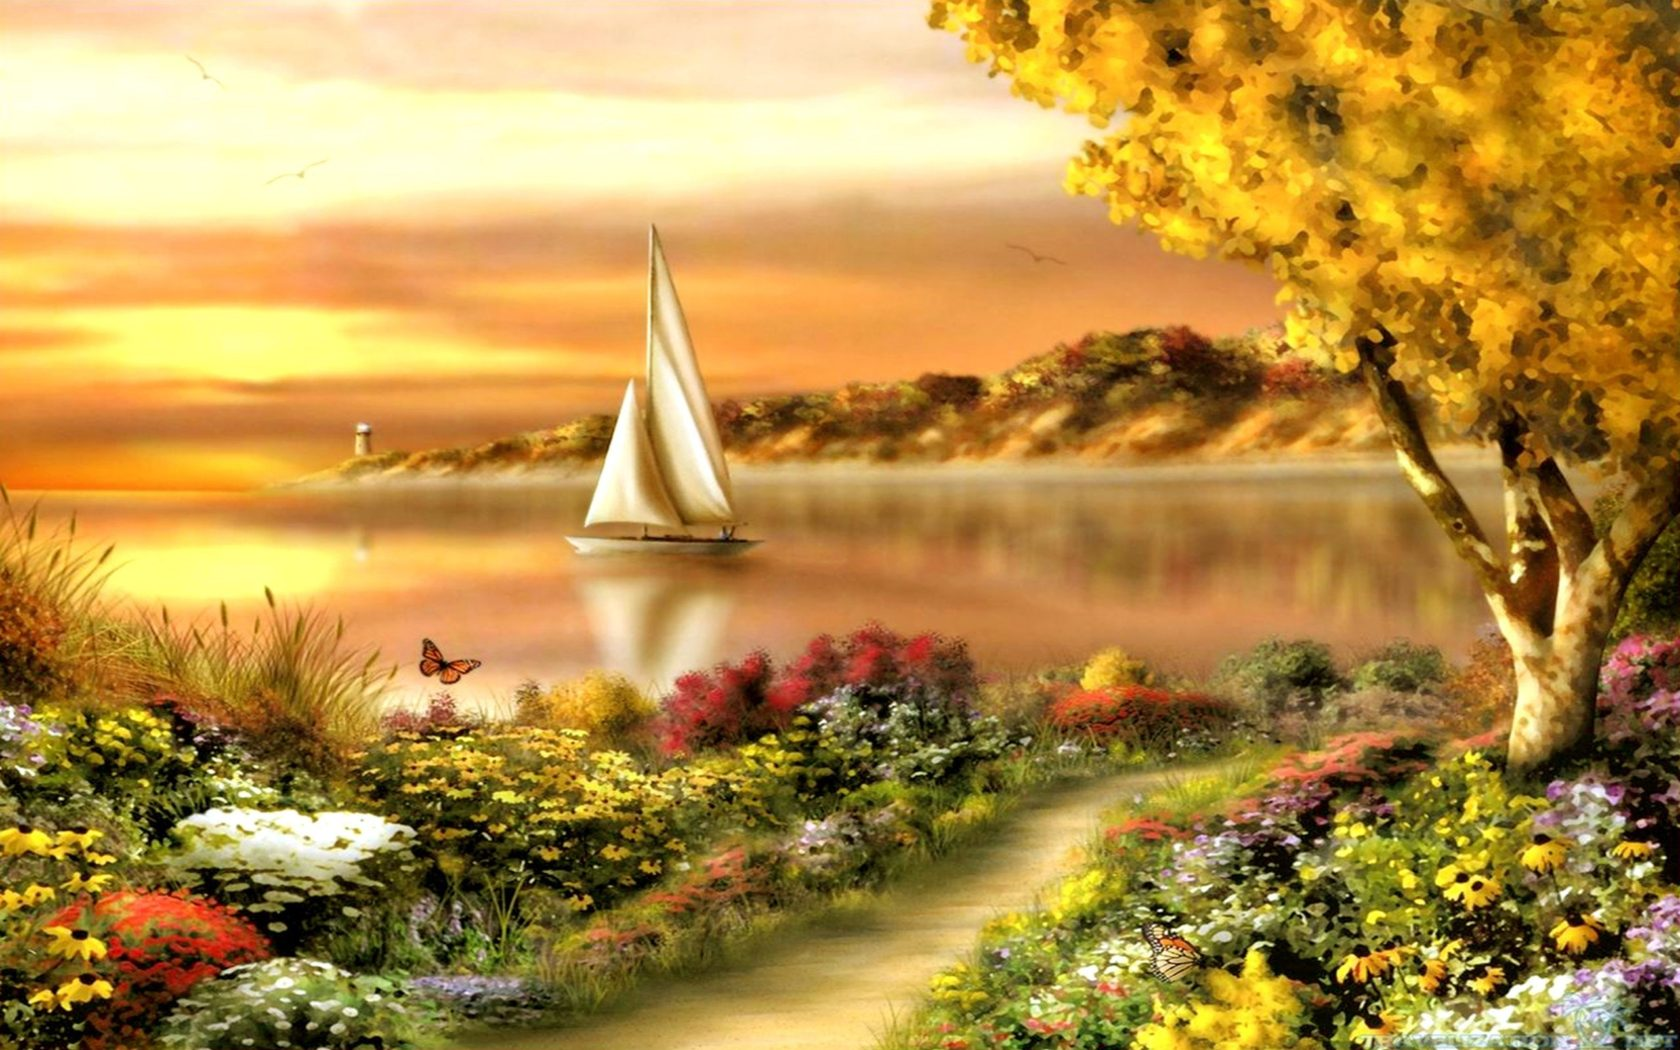 3d Wallpapers For Pc Full Screen Free Download Summer Scenes Wallpapers 2560x1600 Wallpapers13 Com